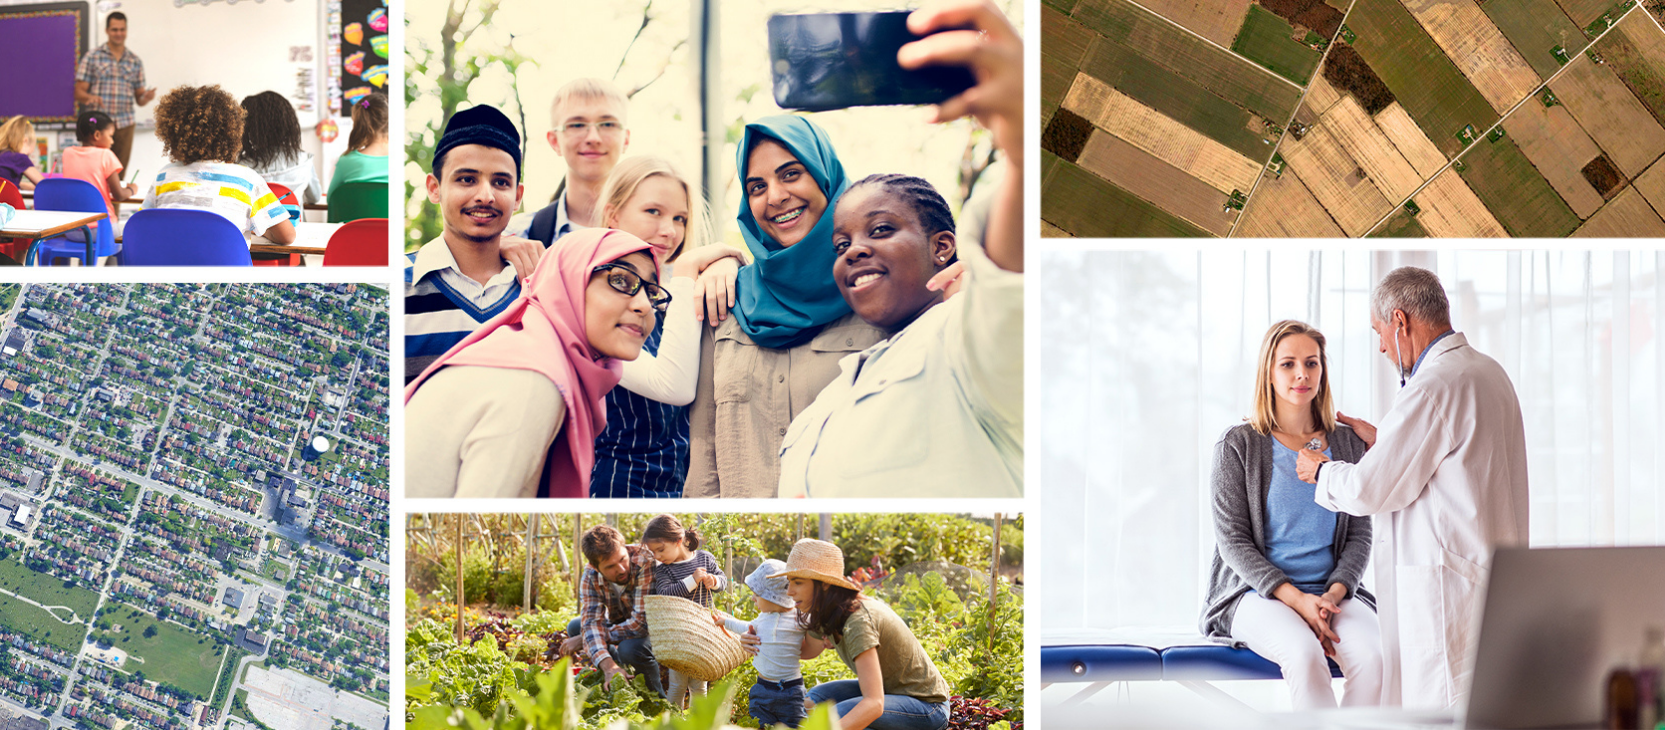 A mosaic featuring students in the classroom, workers in a field, a doctor with a patient, aerial views of urban and rural areas and a group taking a selfie